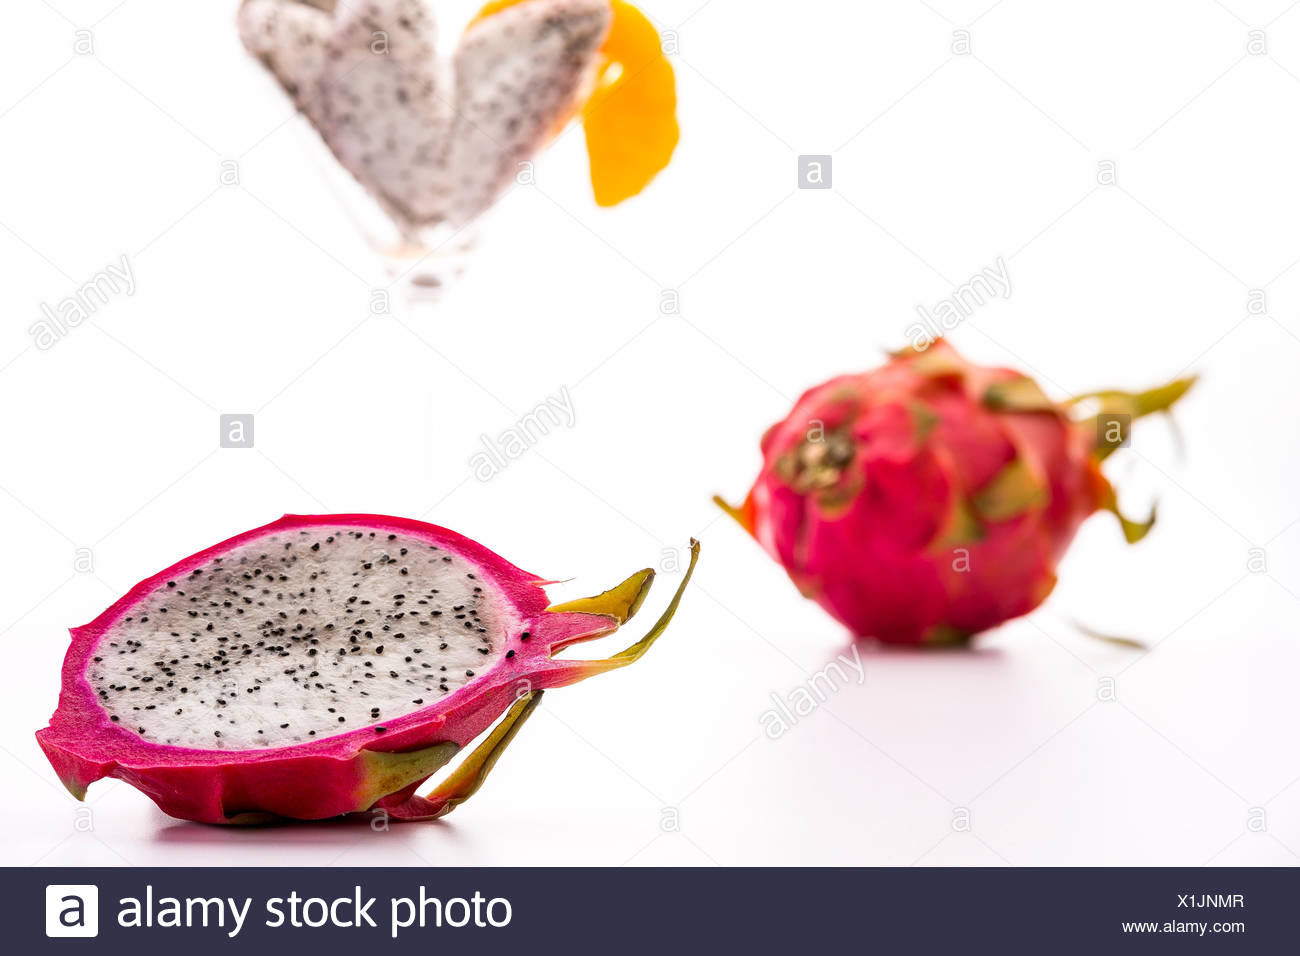 The blazing white and mildly aromatic pulp of the pitaya is suited for a quenching desert. Best served chilled. Assorted in a glass or in its halved rind. - Stock Image